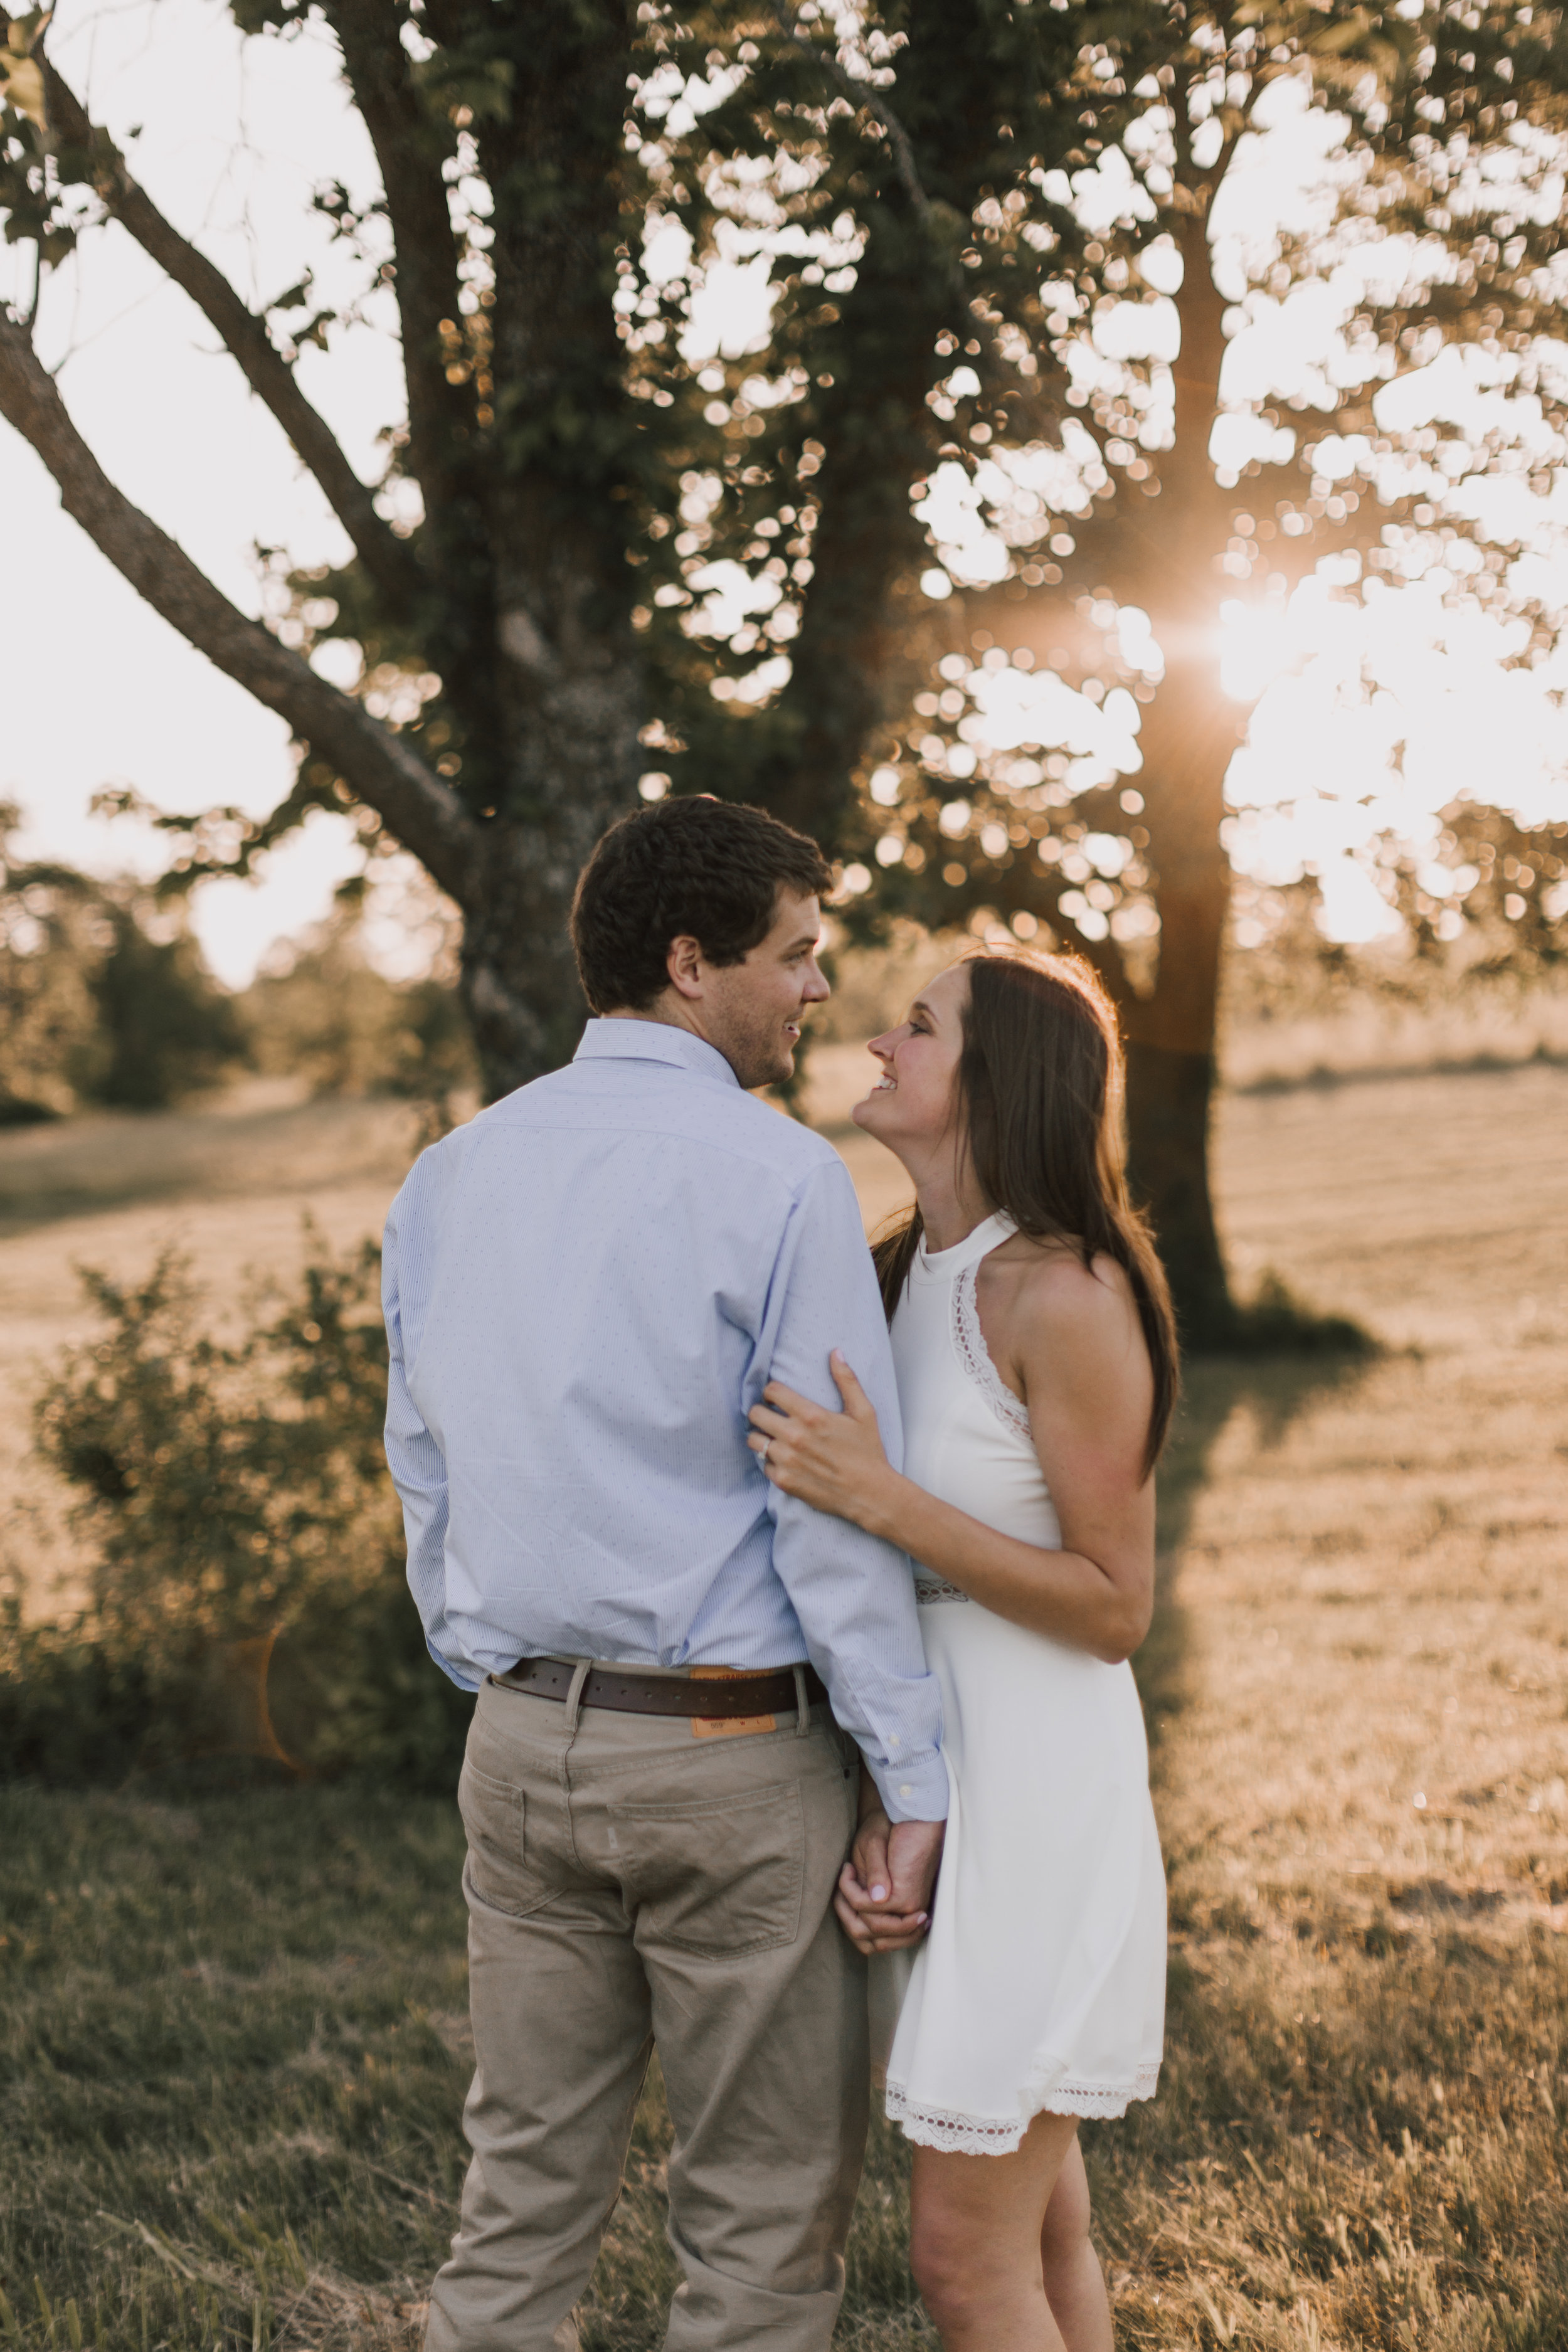 alyssa barletter photography shawnee mission park summer rustic done right engagement session-20.jpg